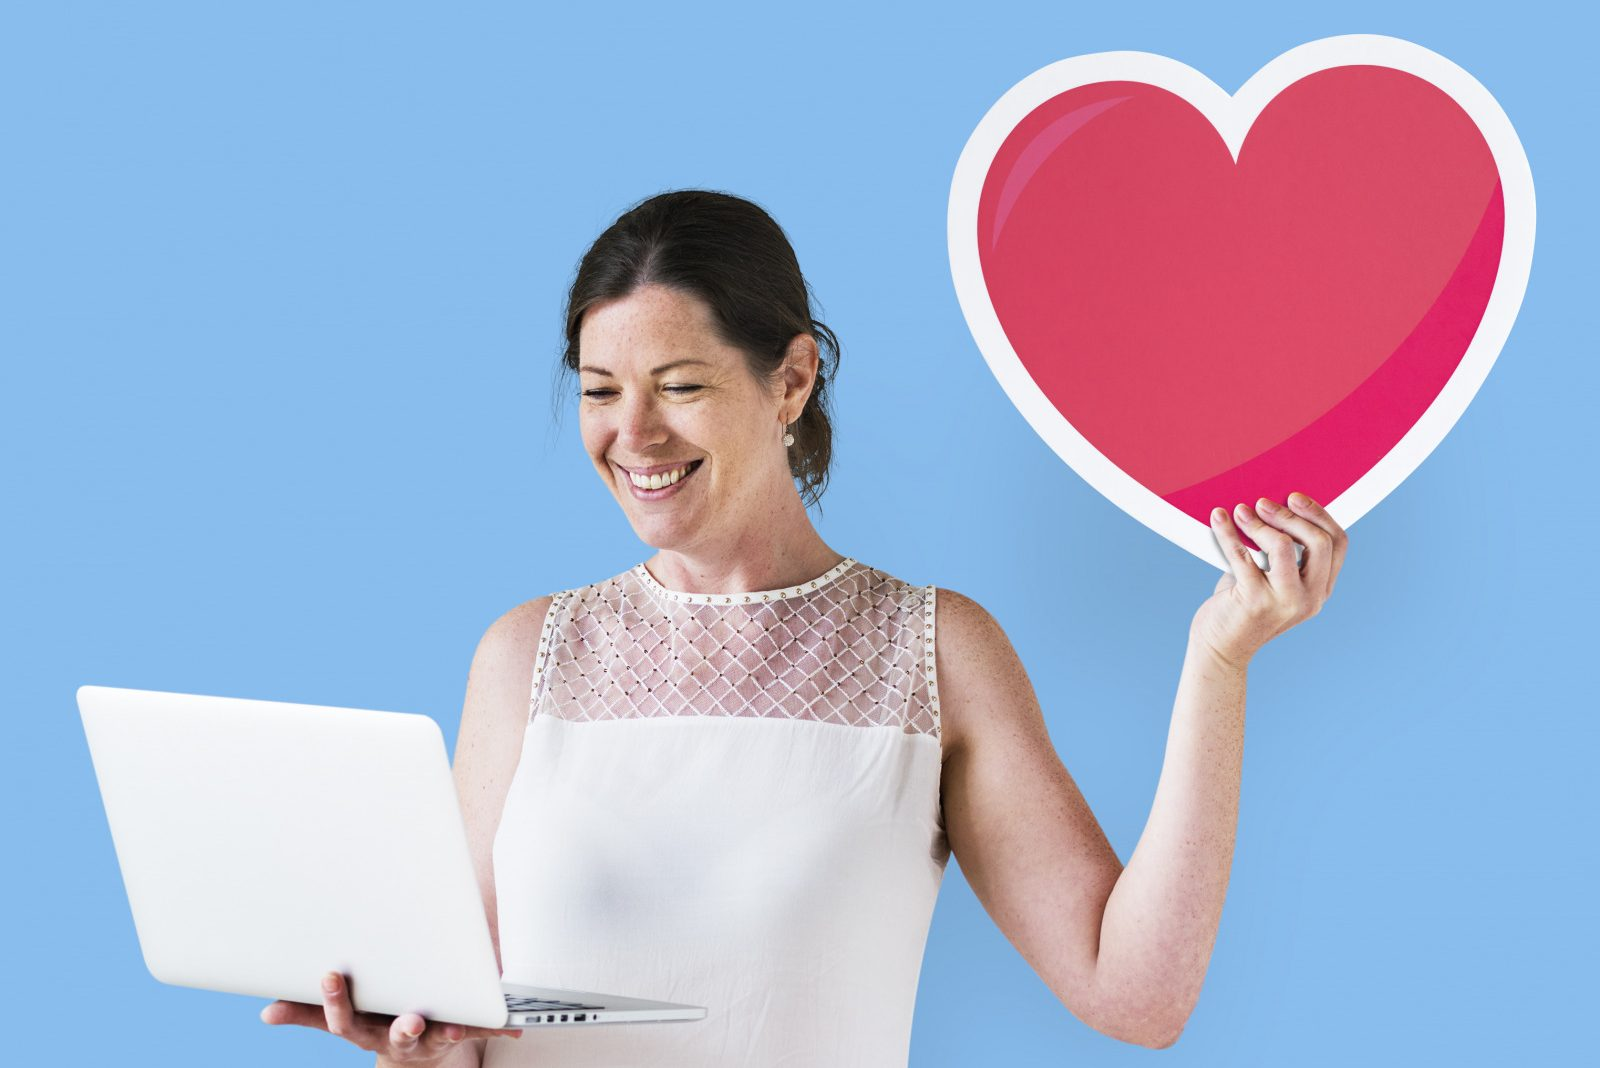 woman on a laptop requesting a donation holding a large paper heart in her hand